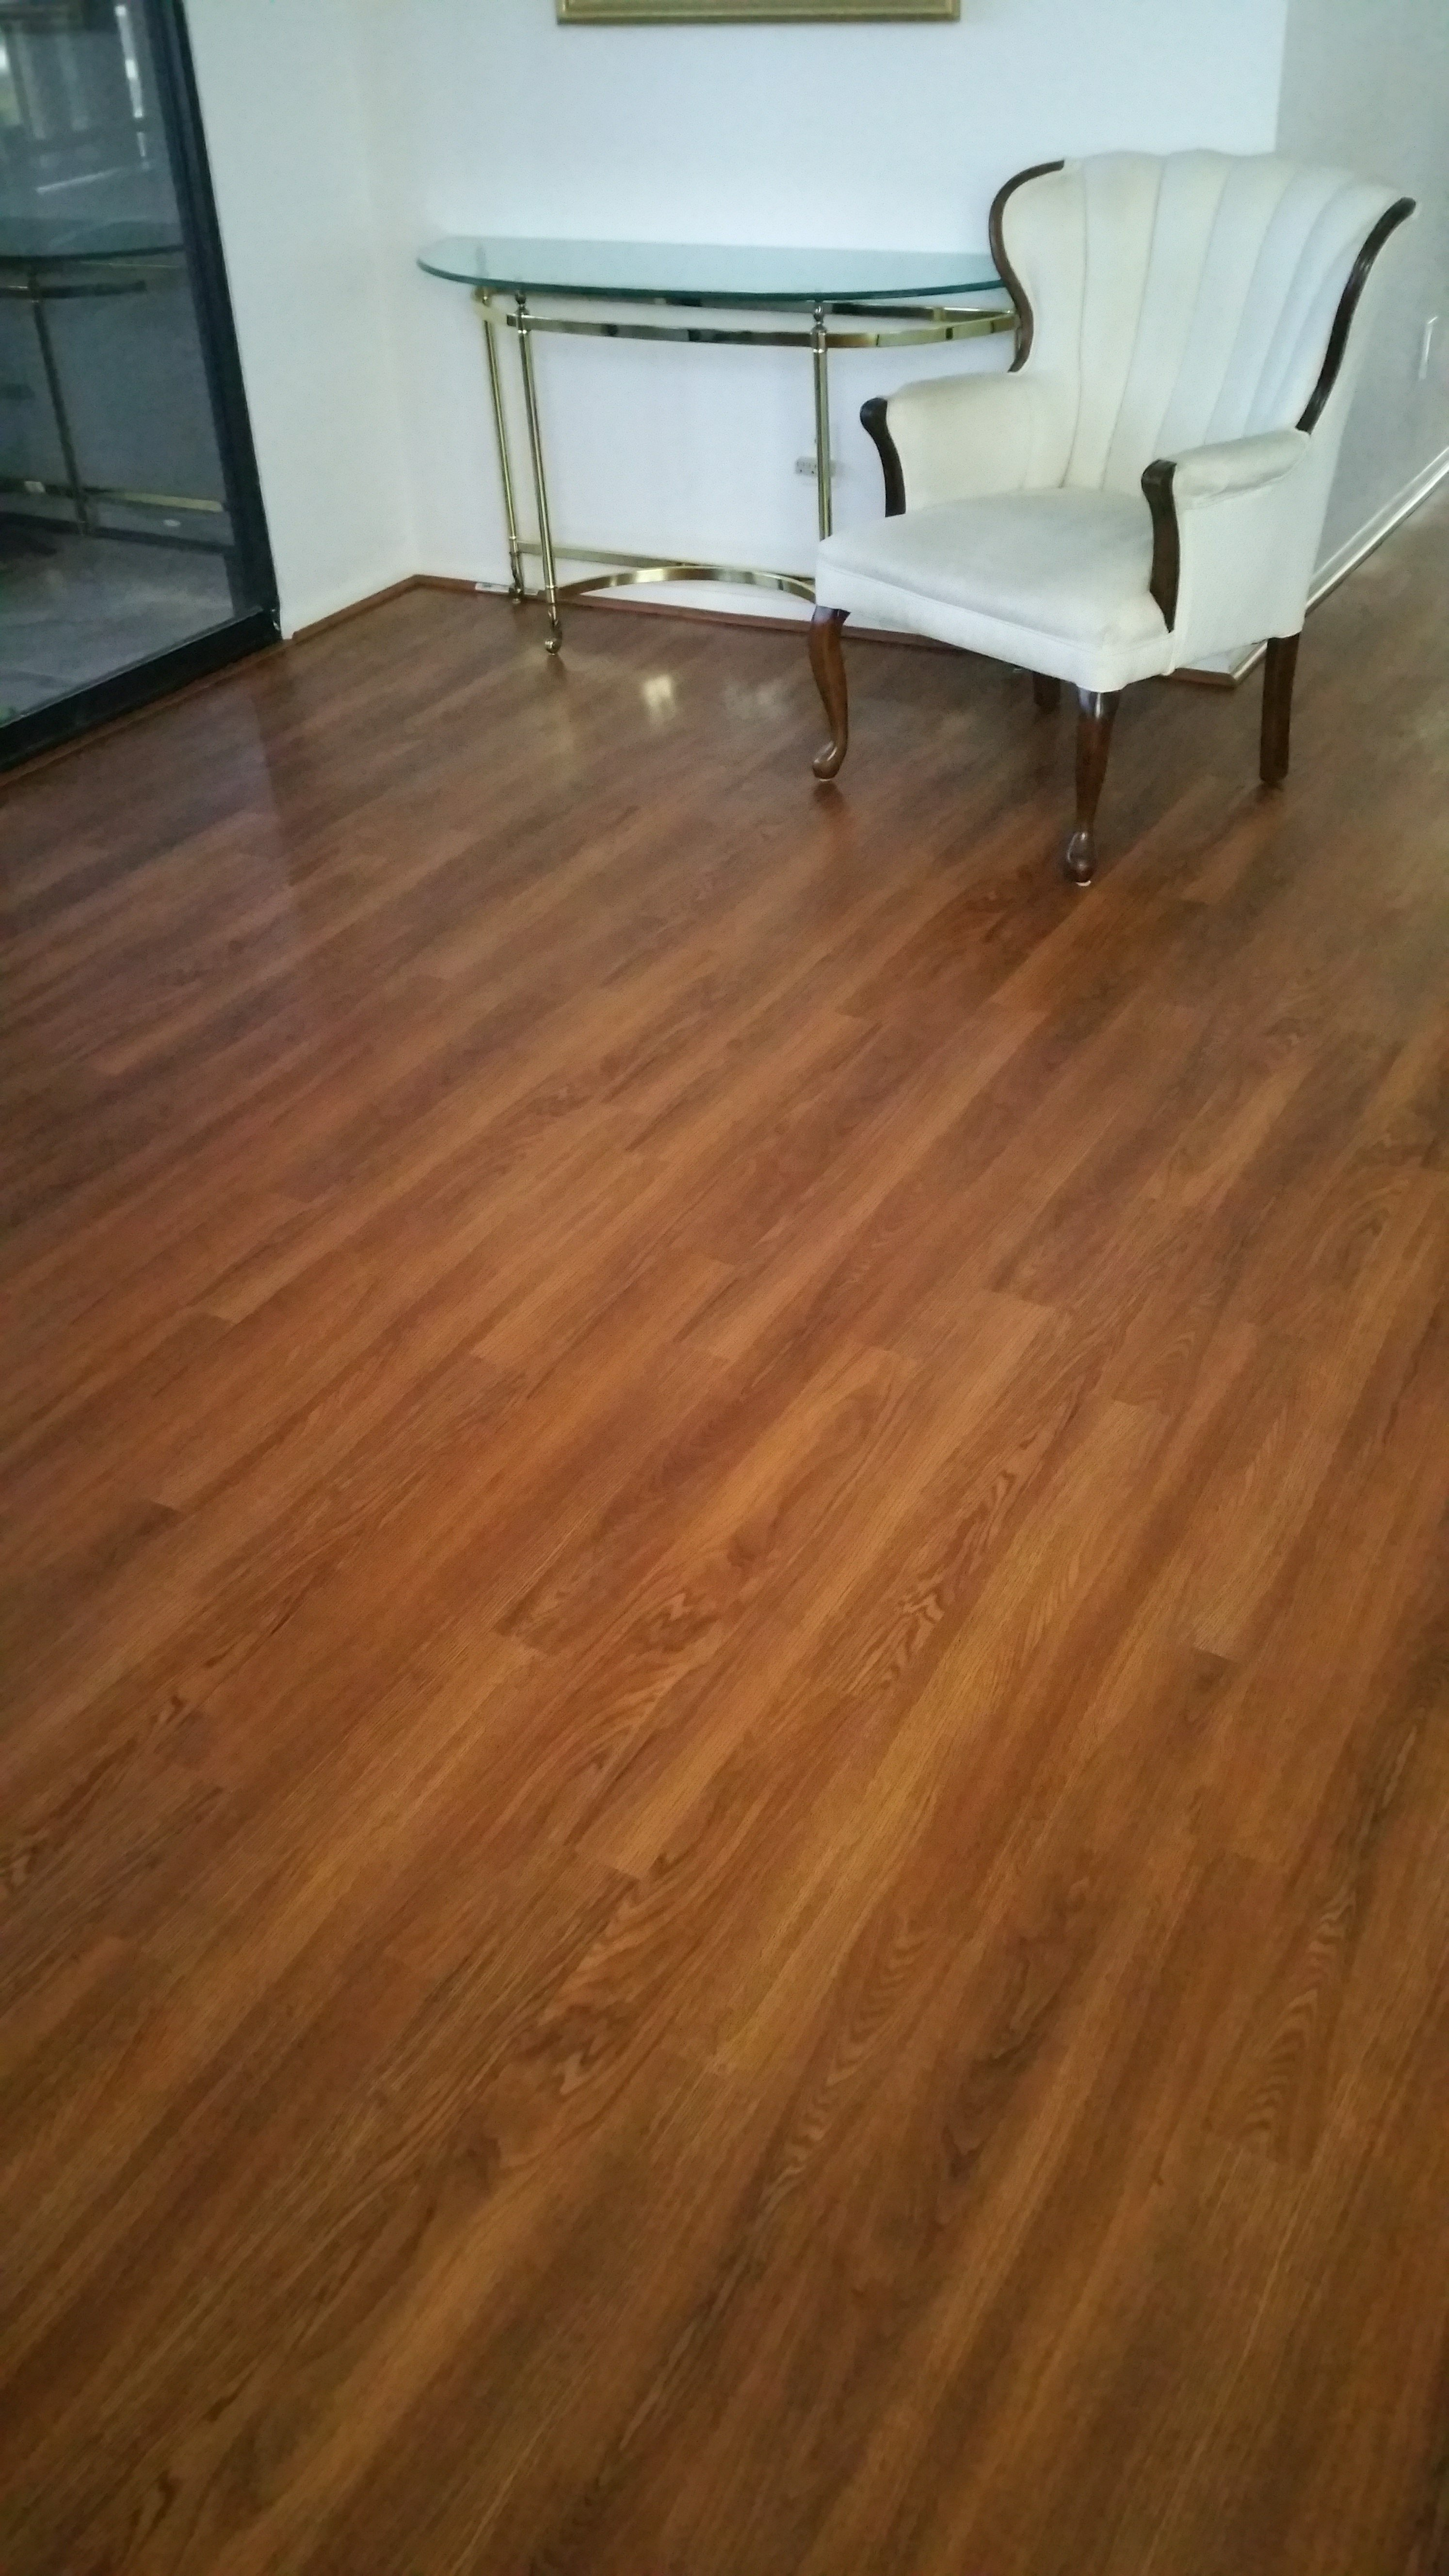 deep oak stained hardwood flooring with white, wooden legged upholstered furniture